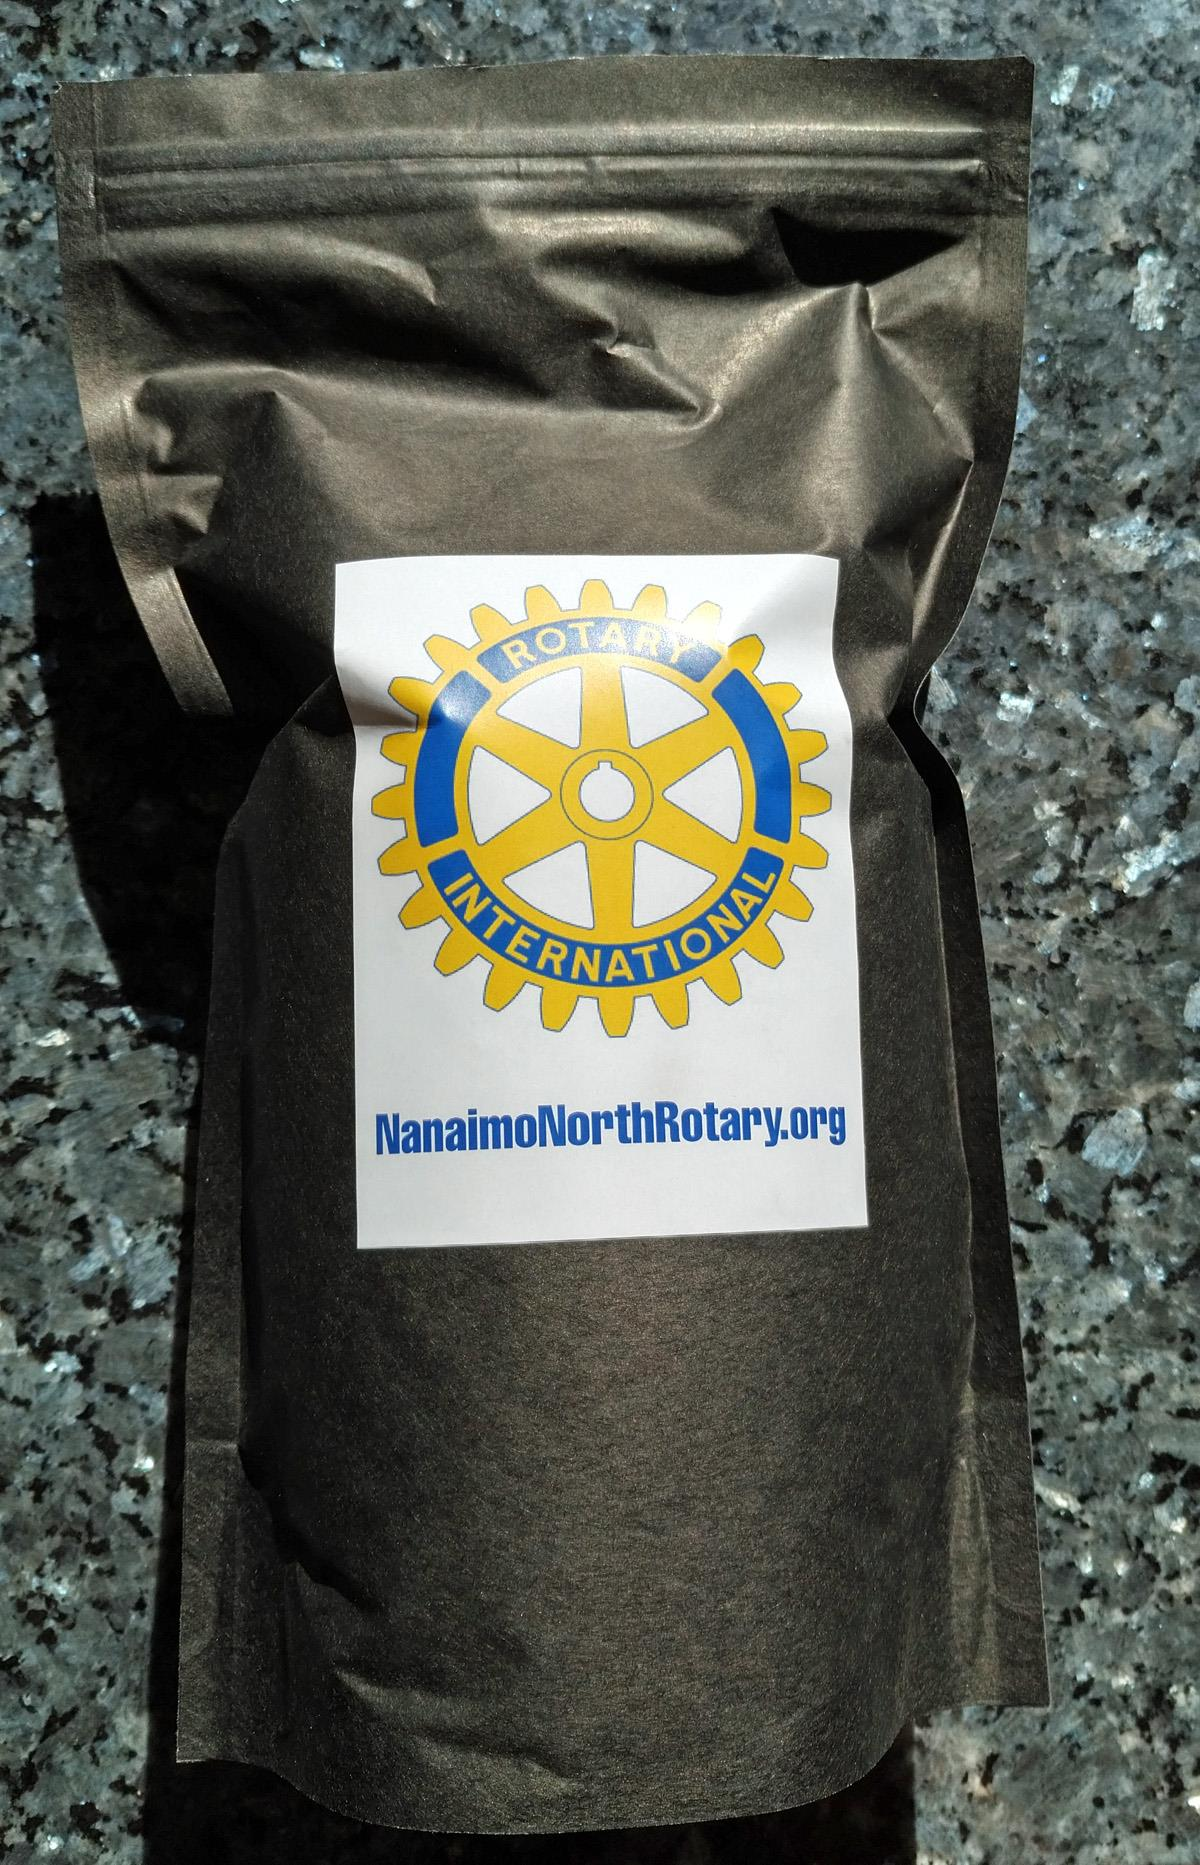 140cd4b94 Organic, fairly traded beans, roasted locally on the Mid Island in a  convenient re-sealable bag.